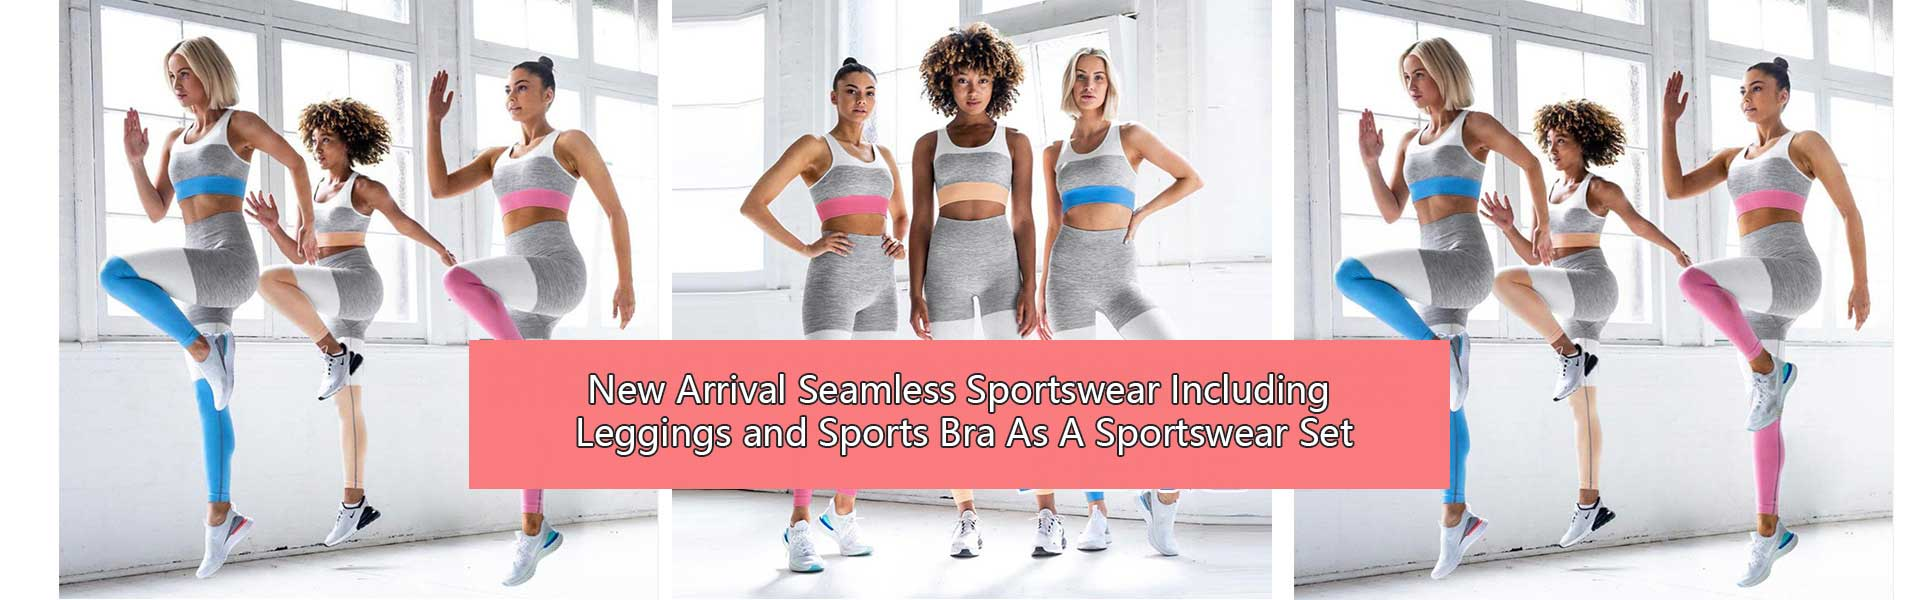 New-Arrival-Seamless-sportswear-including-leggings-and-sports-bra-as-a-set-and-rich-color-for-you-choice